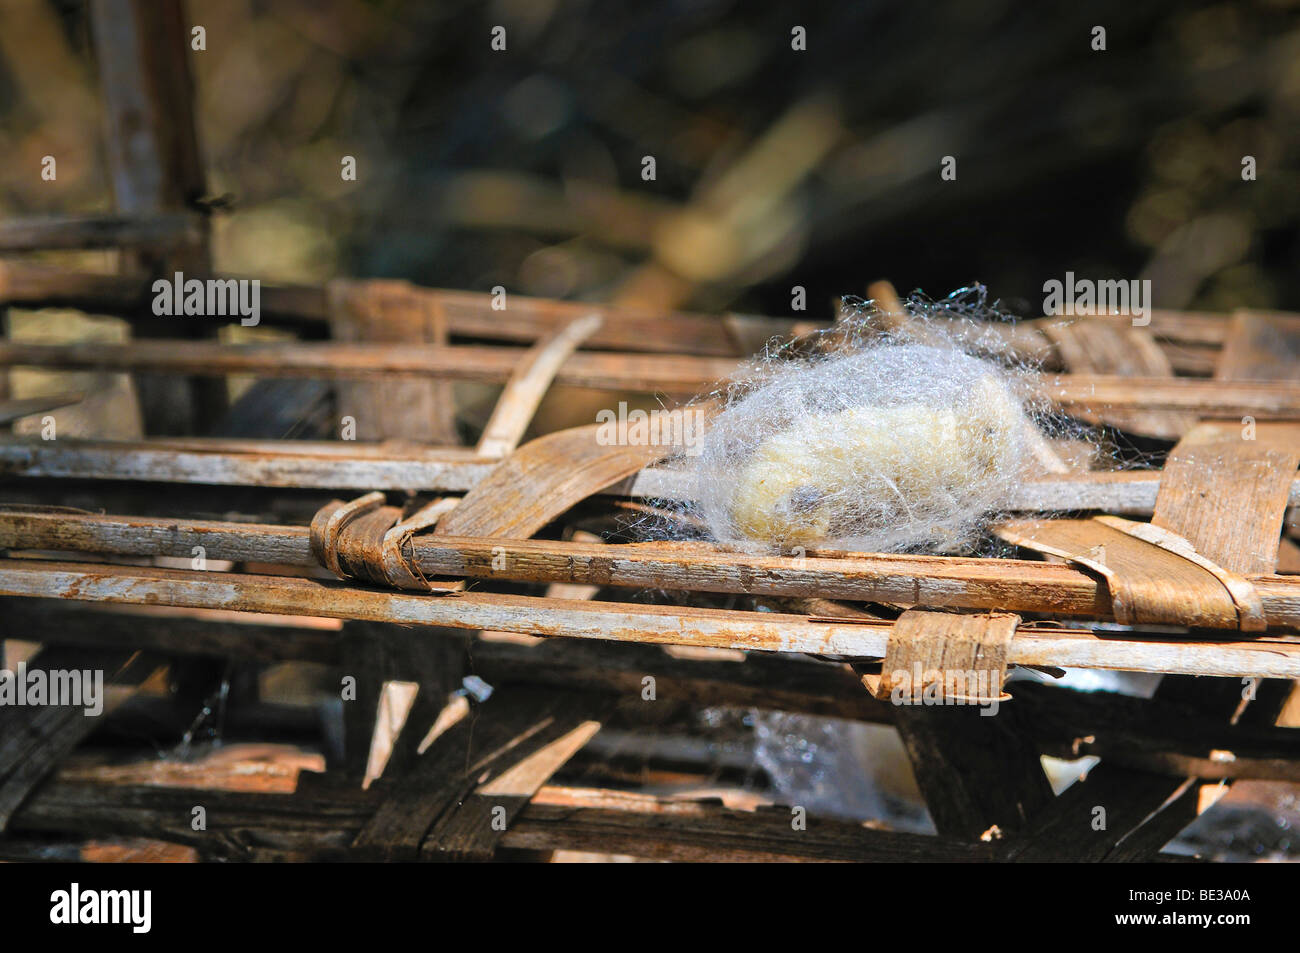 A silkworm (Bombyx mori) spins itself into a cocoon, sericulture, silk farming, Dalat capital, Central Highlands, - Stock Image